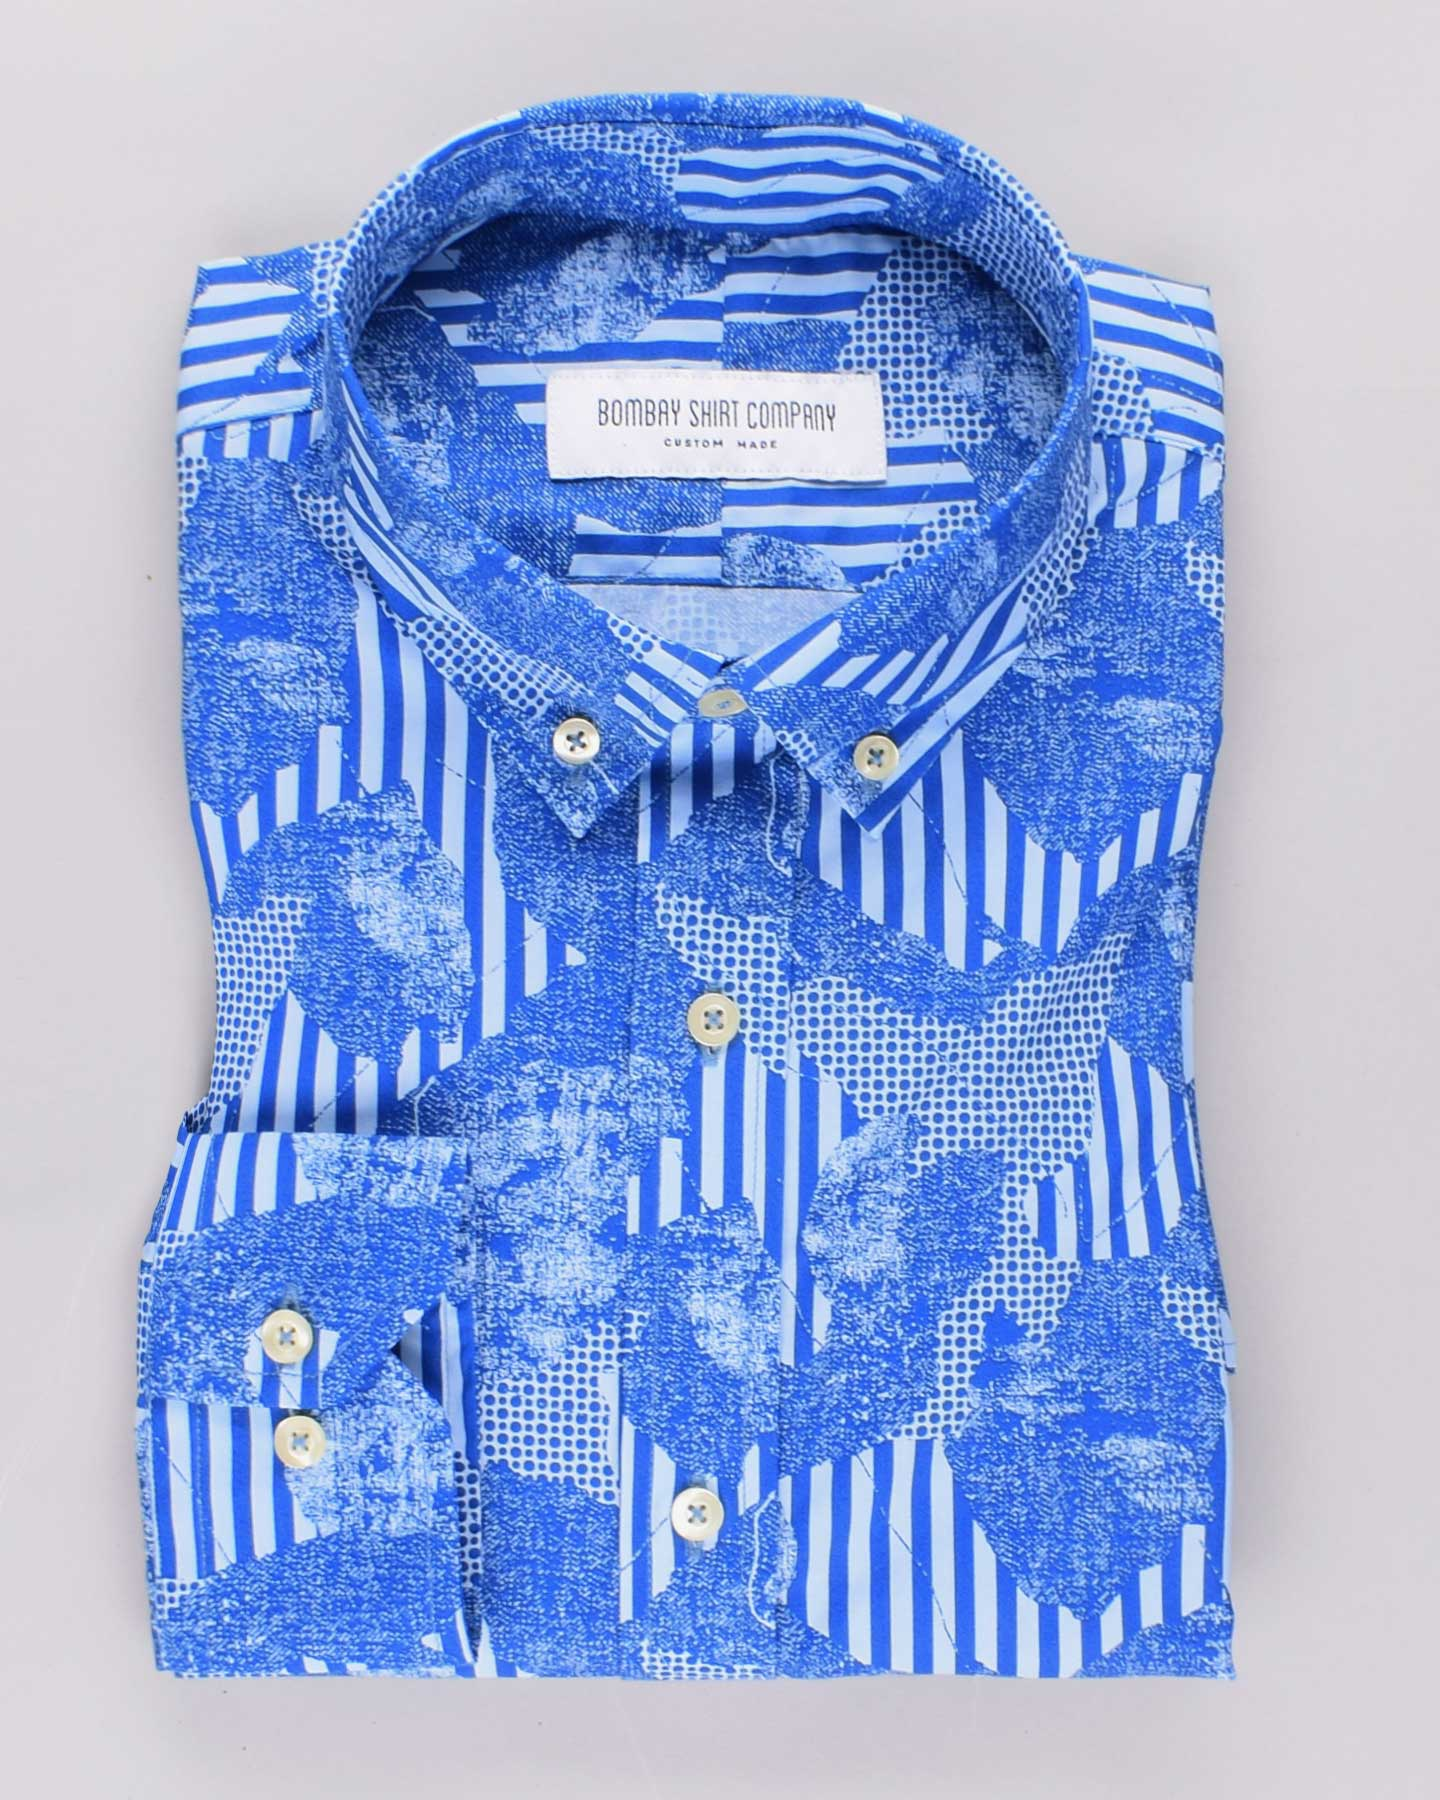 Cerulean Collage Print Shirt